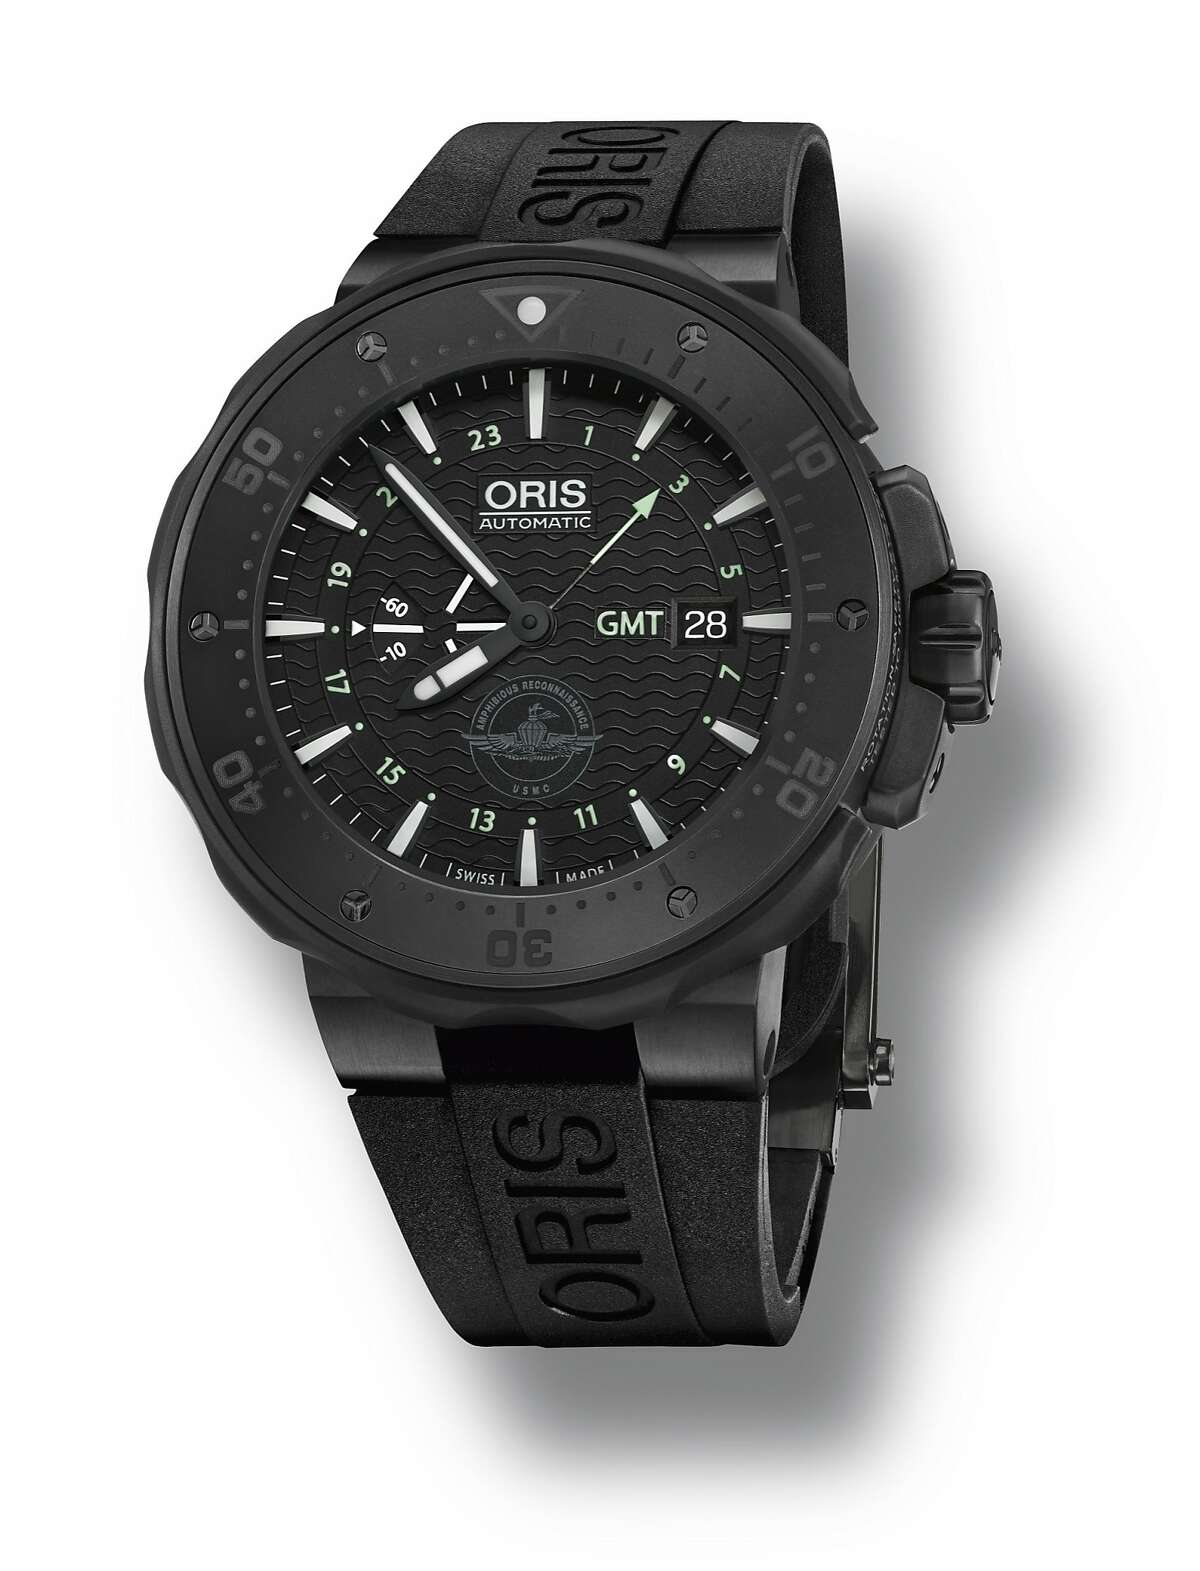 """A new Swiss luxury watch, the Oris Force Recon GMT, has roots in the Bay Area: It was developed by Oris with Menlo Park jeweler Ceci Wong and the 4th Force Reconnaissance Company of the U.S. Marine Corps, located in Alameda. The watch retails for $4,200. It shows a second time zone, was tested during jumping and scuba expeditions, and features a """"small seconds"""" display, designed to show the wearer the watch is working in lowlight conditions, a useful device when """"going dark."""" It comes in a special carrying case with extra straps and tools for minor repairs."""